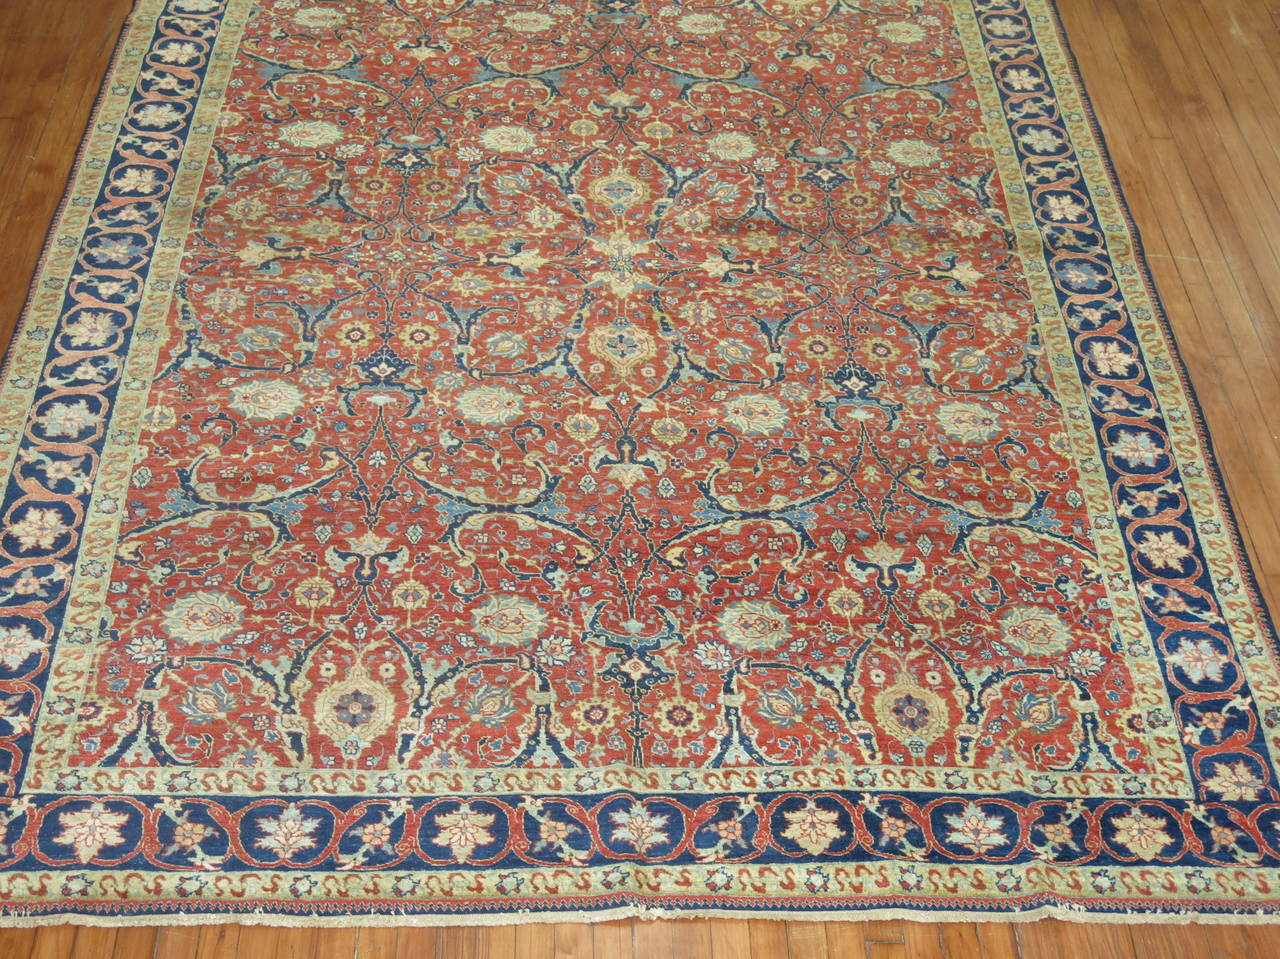 Hand-Woven 19th Century Antique Persian Tabriz For Sale